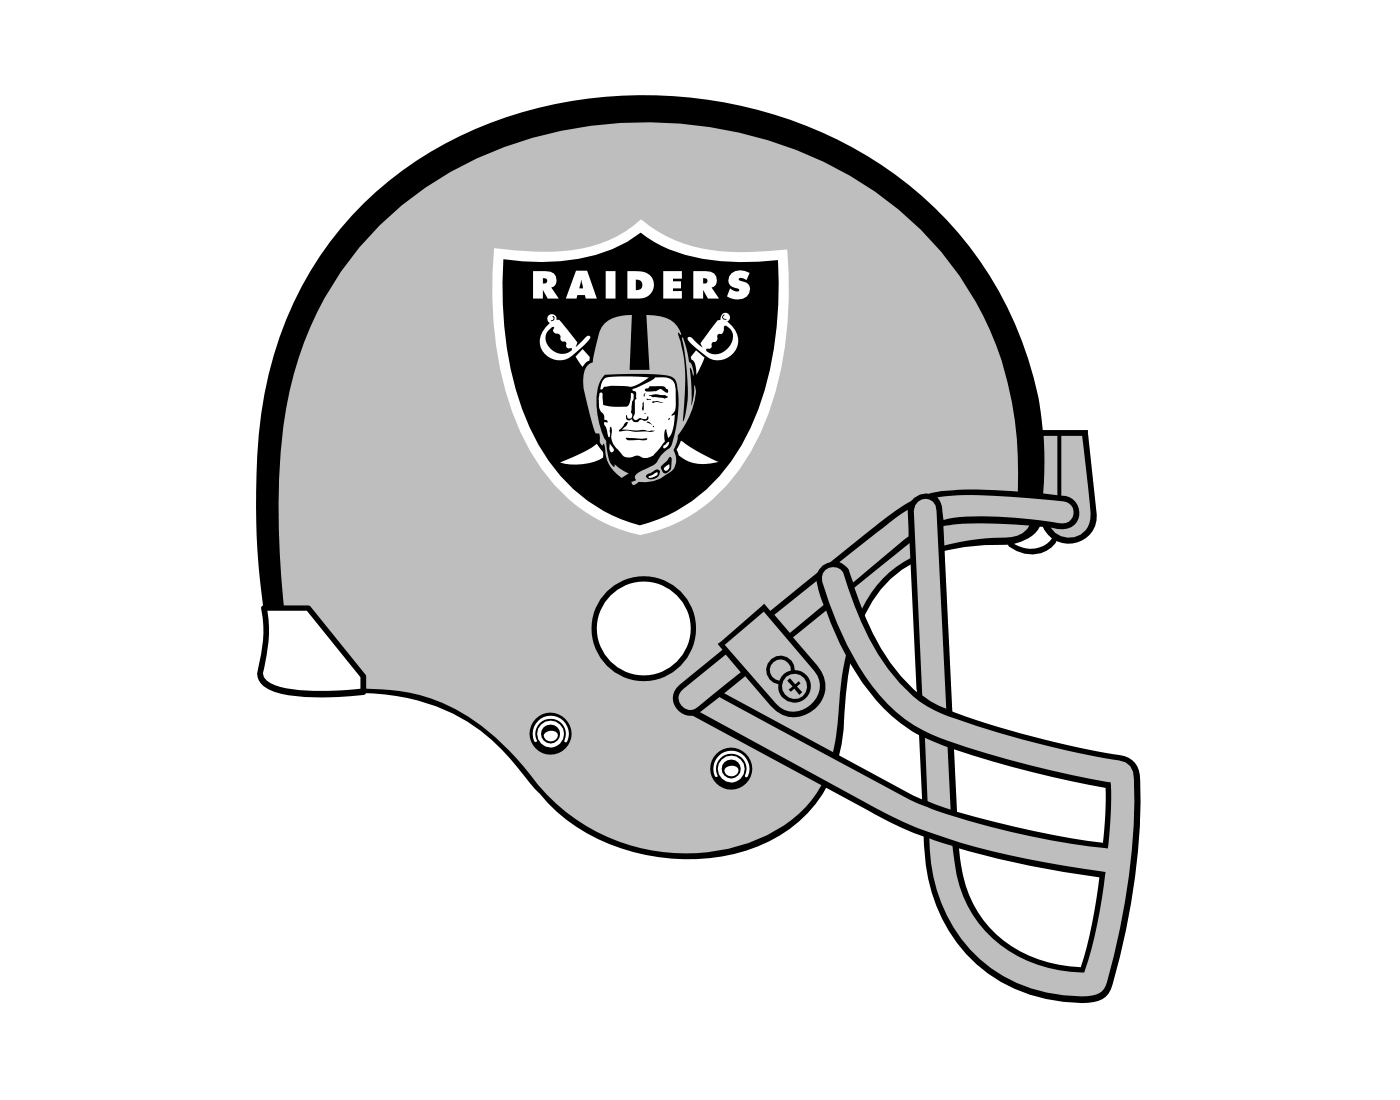 Raiders logo outline oakland raiders logo coloring pages for Oakland raiders logo coloring page